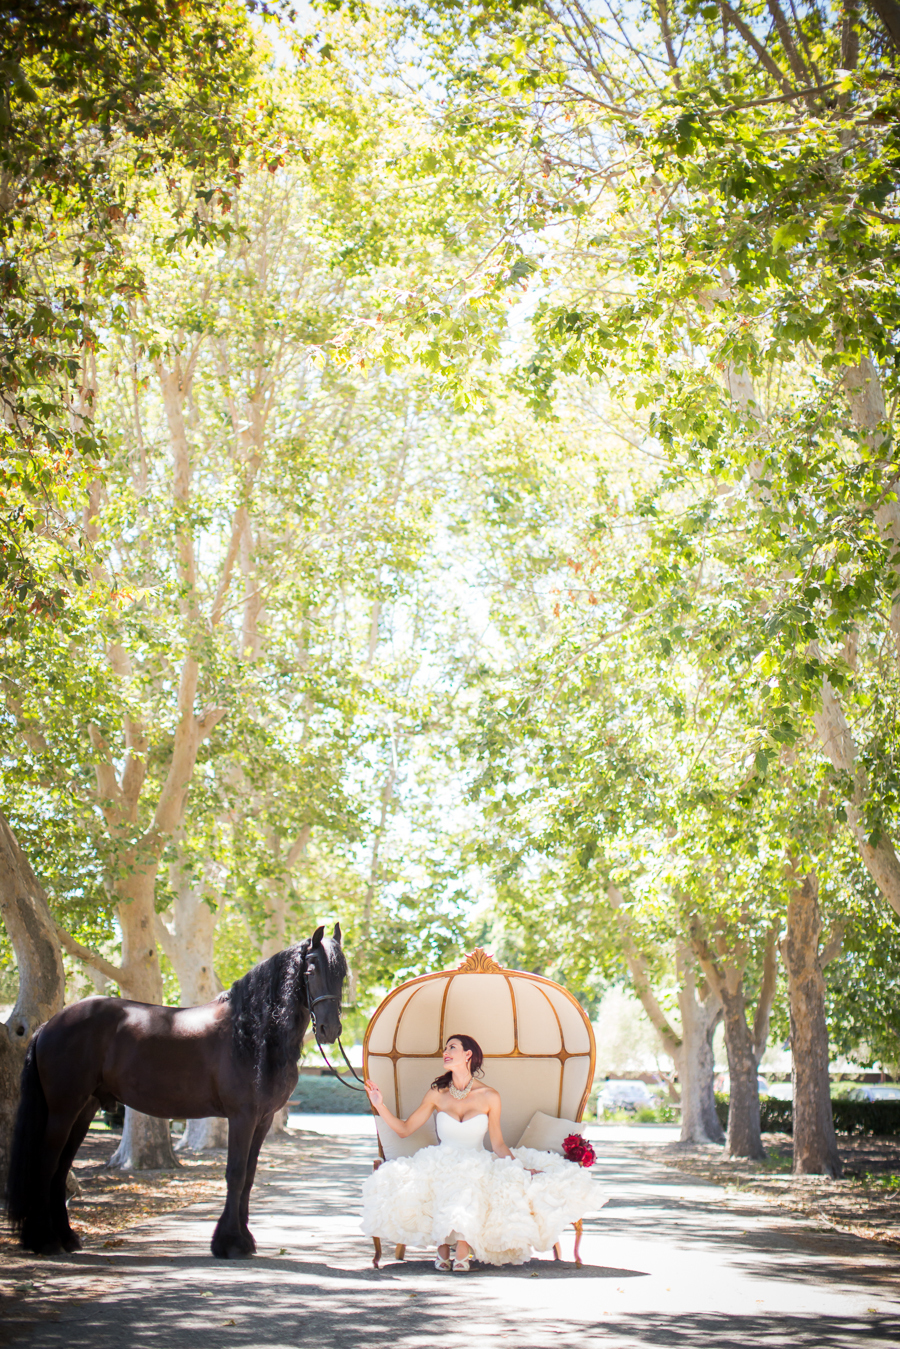 www.santabarbarawedding.com | Ann Johnson Events | Jessica Lewis Photo | Whispering Rose Ranch | Bride and Horse